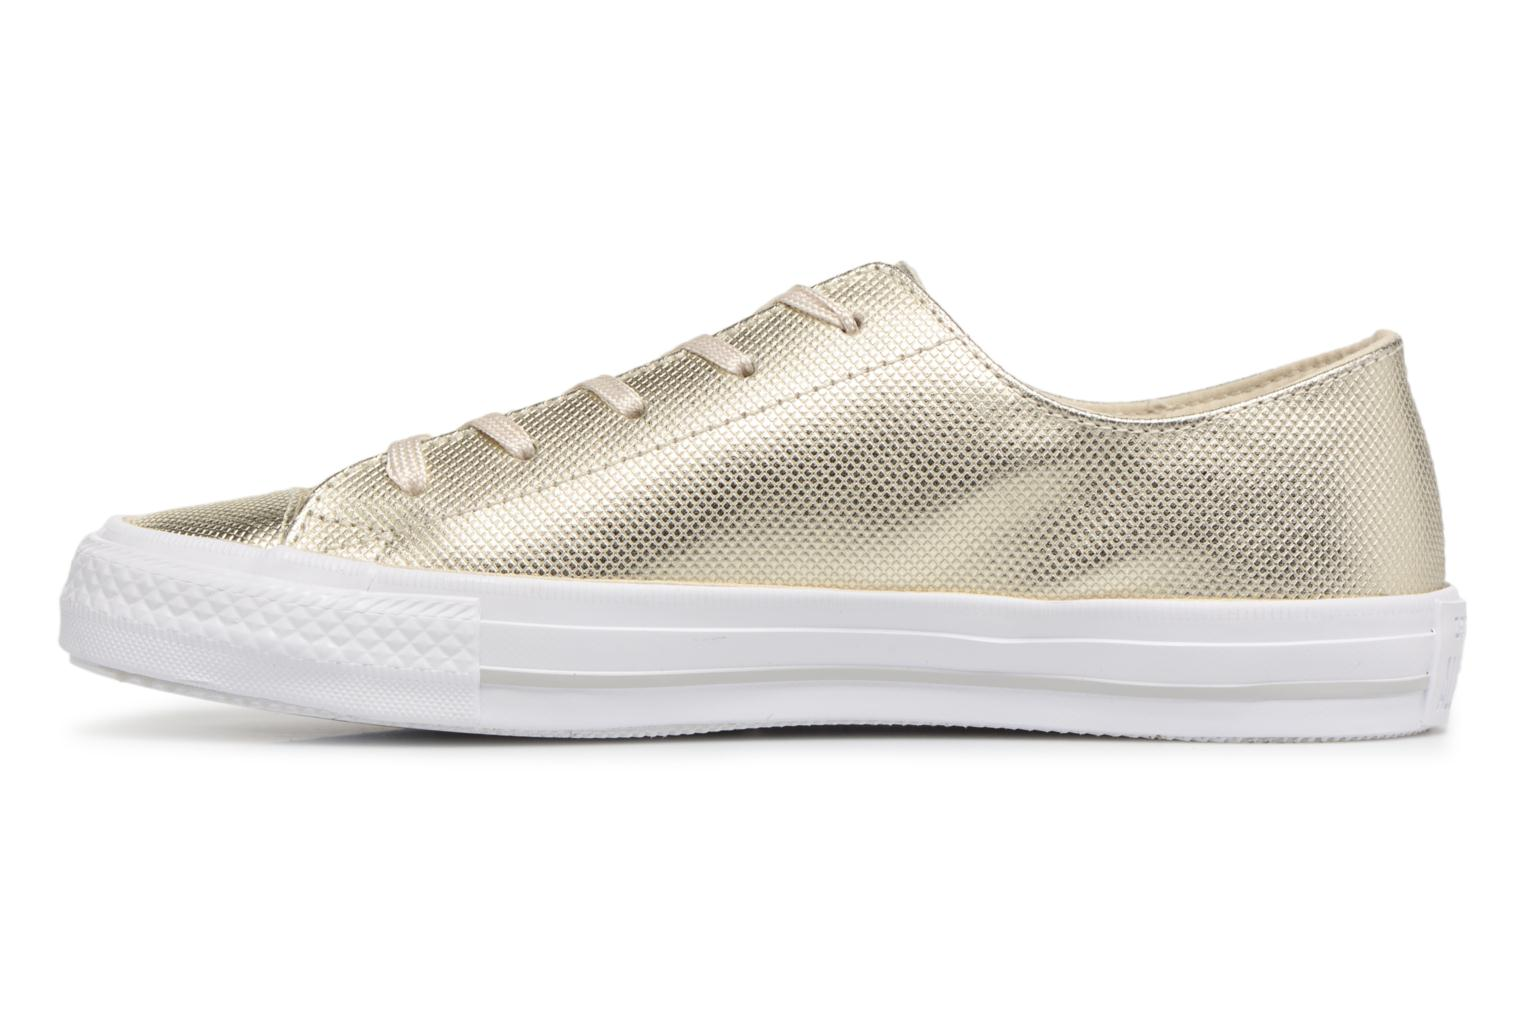 Sneaker Converse Ctas Gemma Diamond Foil Leather Ox gold/bronze ansicht von vorne